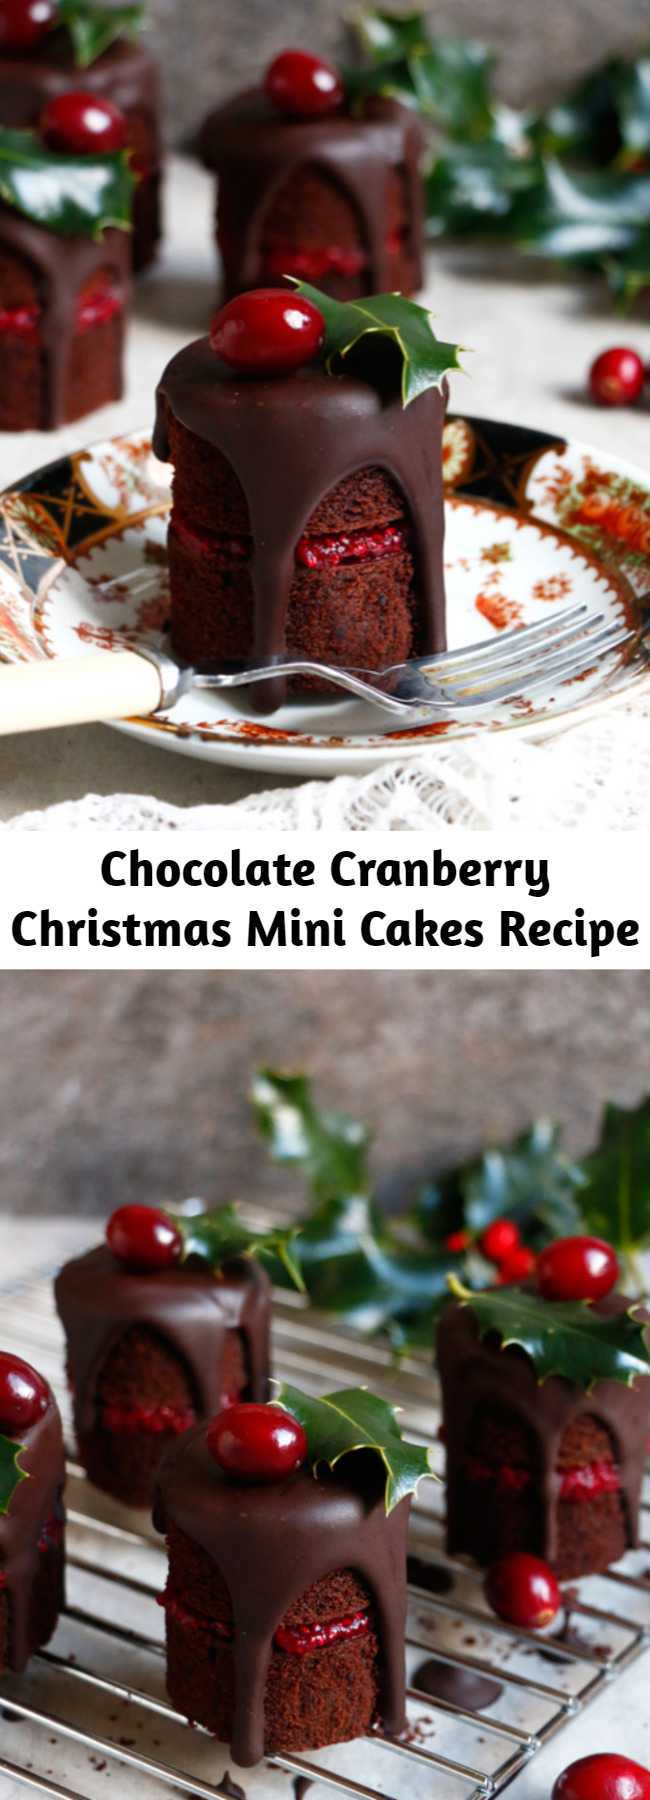 Chocolate Cranberry Christmas Mini Cakes Recipe - Chocolate Cranberry Christmas Mini Cakes Recipe. Vegan, gluten-free and nut-free wholesome chocolate mini cakes filled with quick cranberry chia jam.